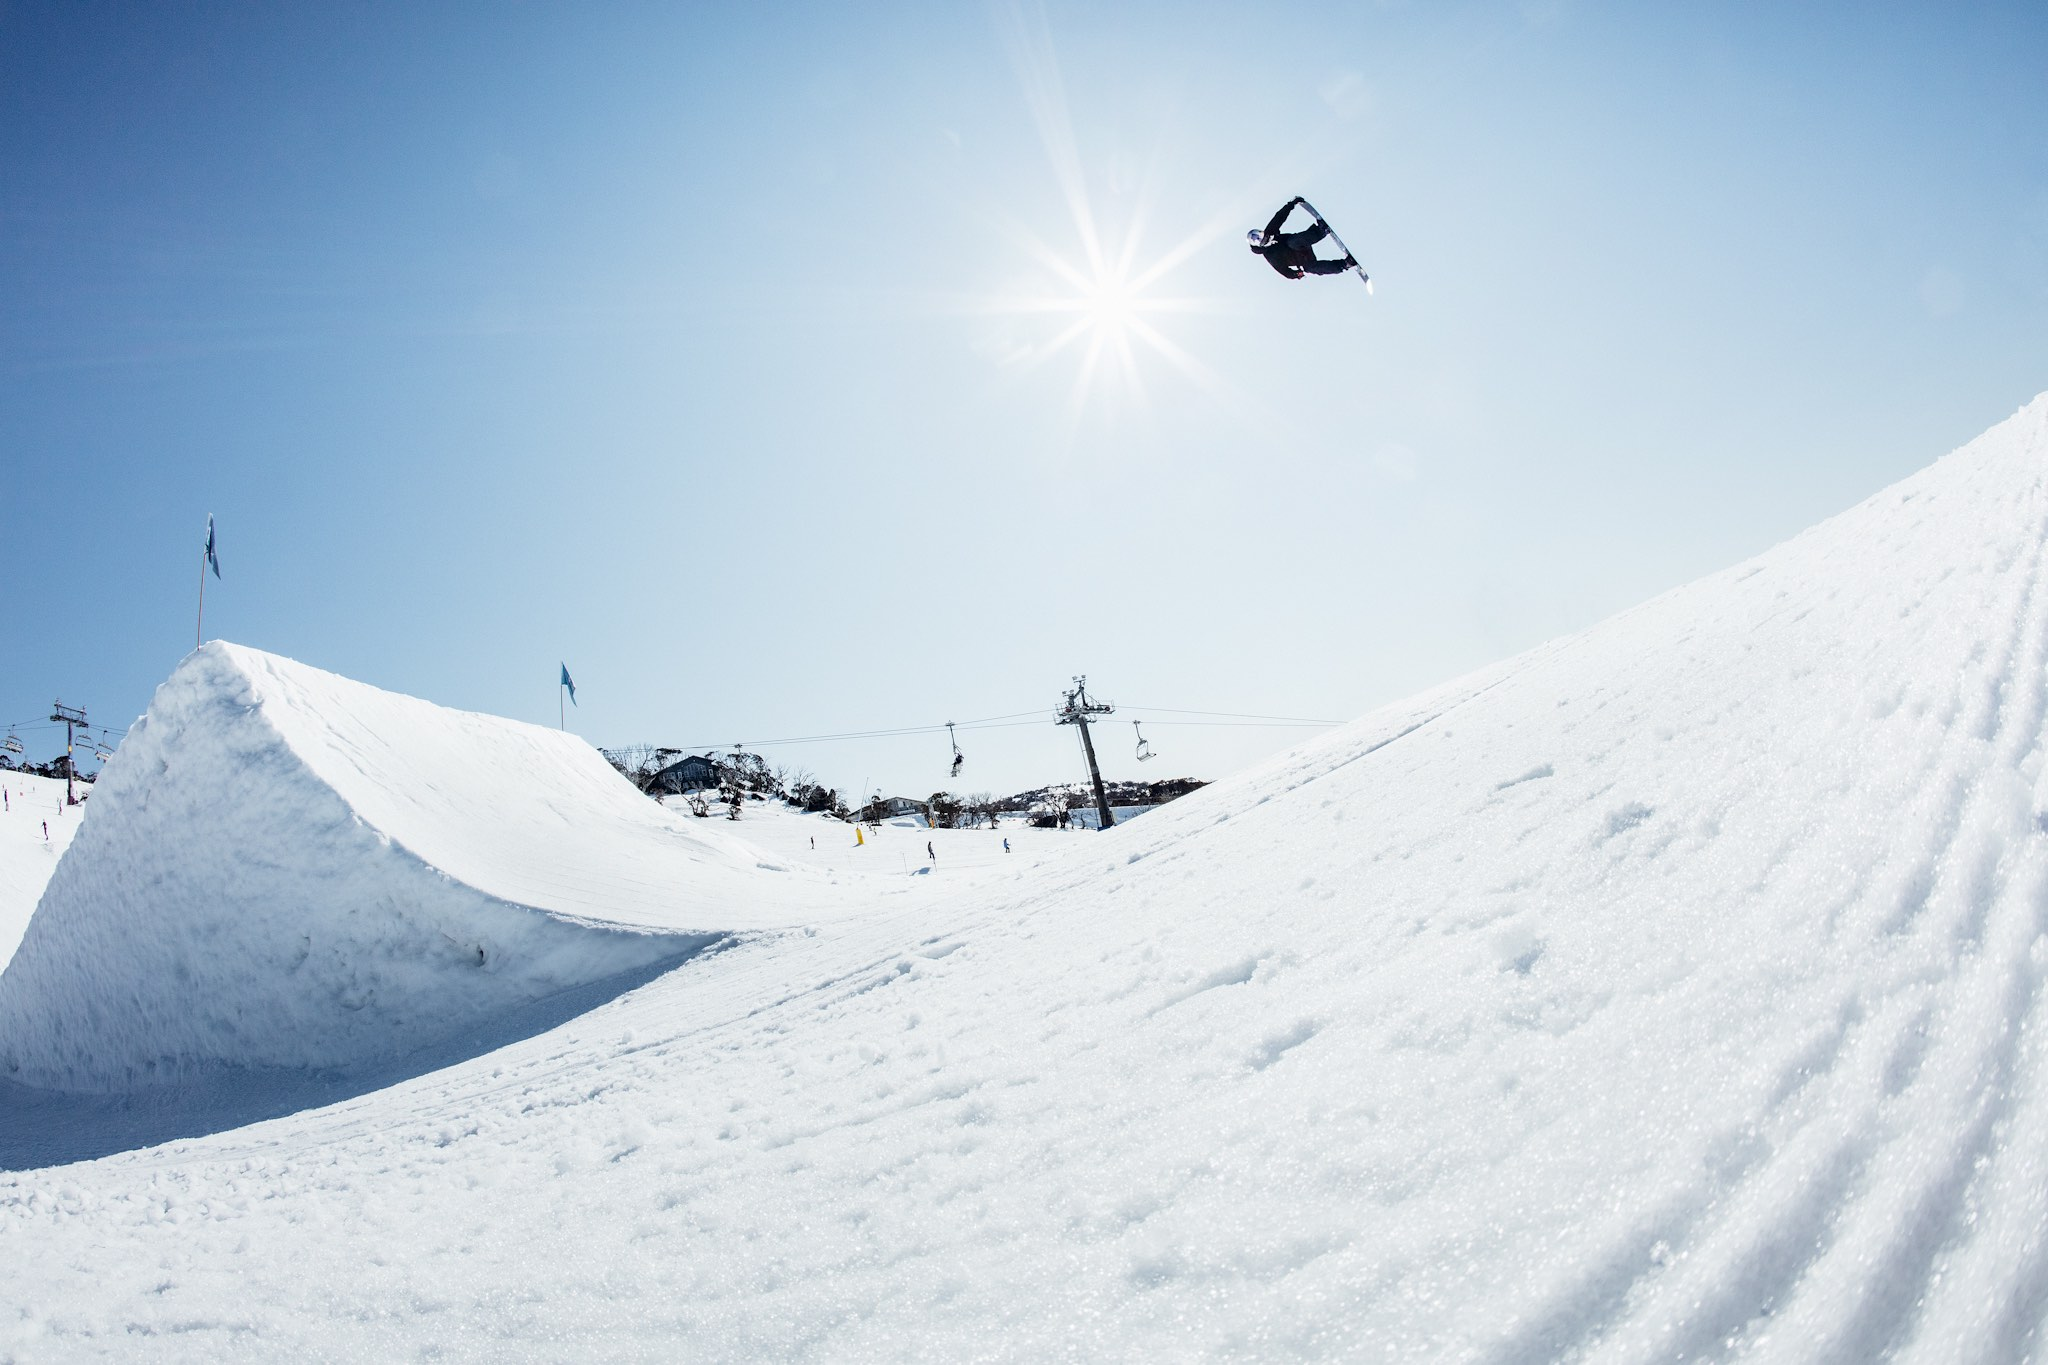 GB Park and Pipe gear up for the Winter Games NZ